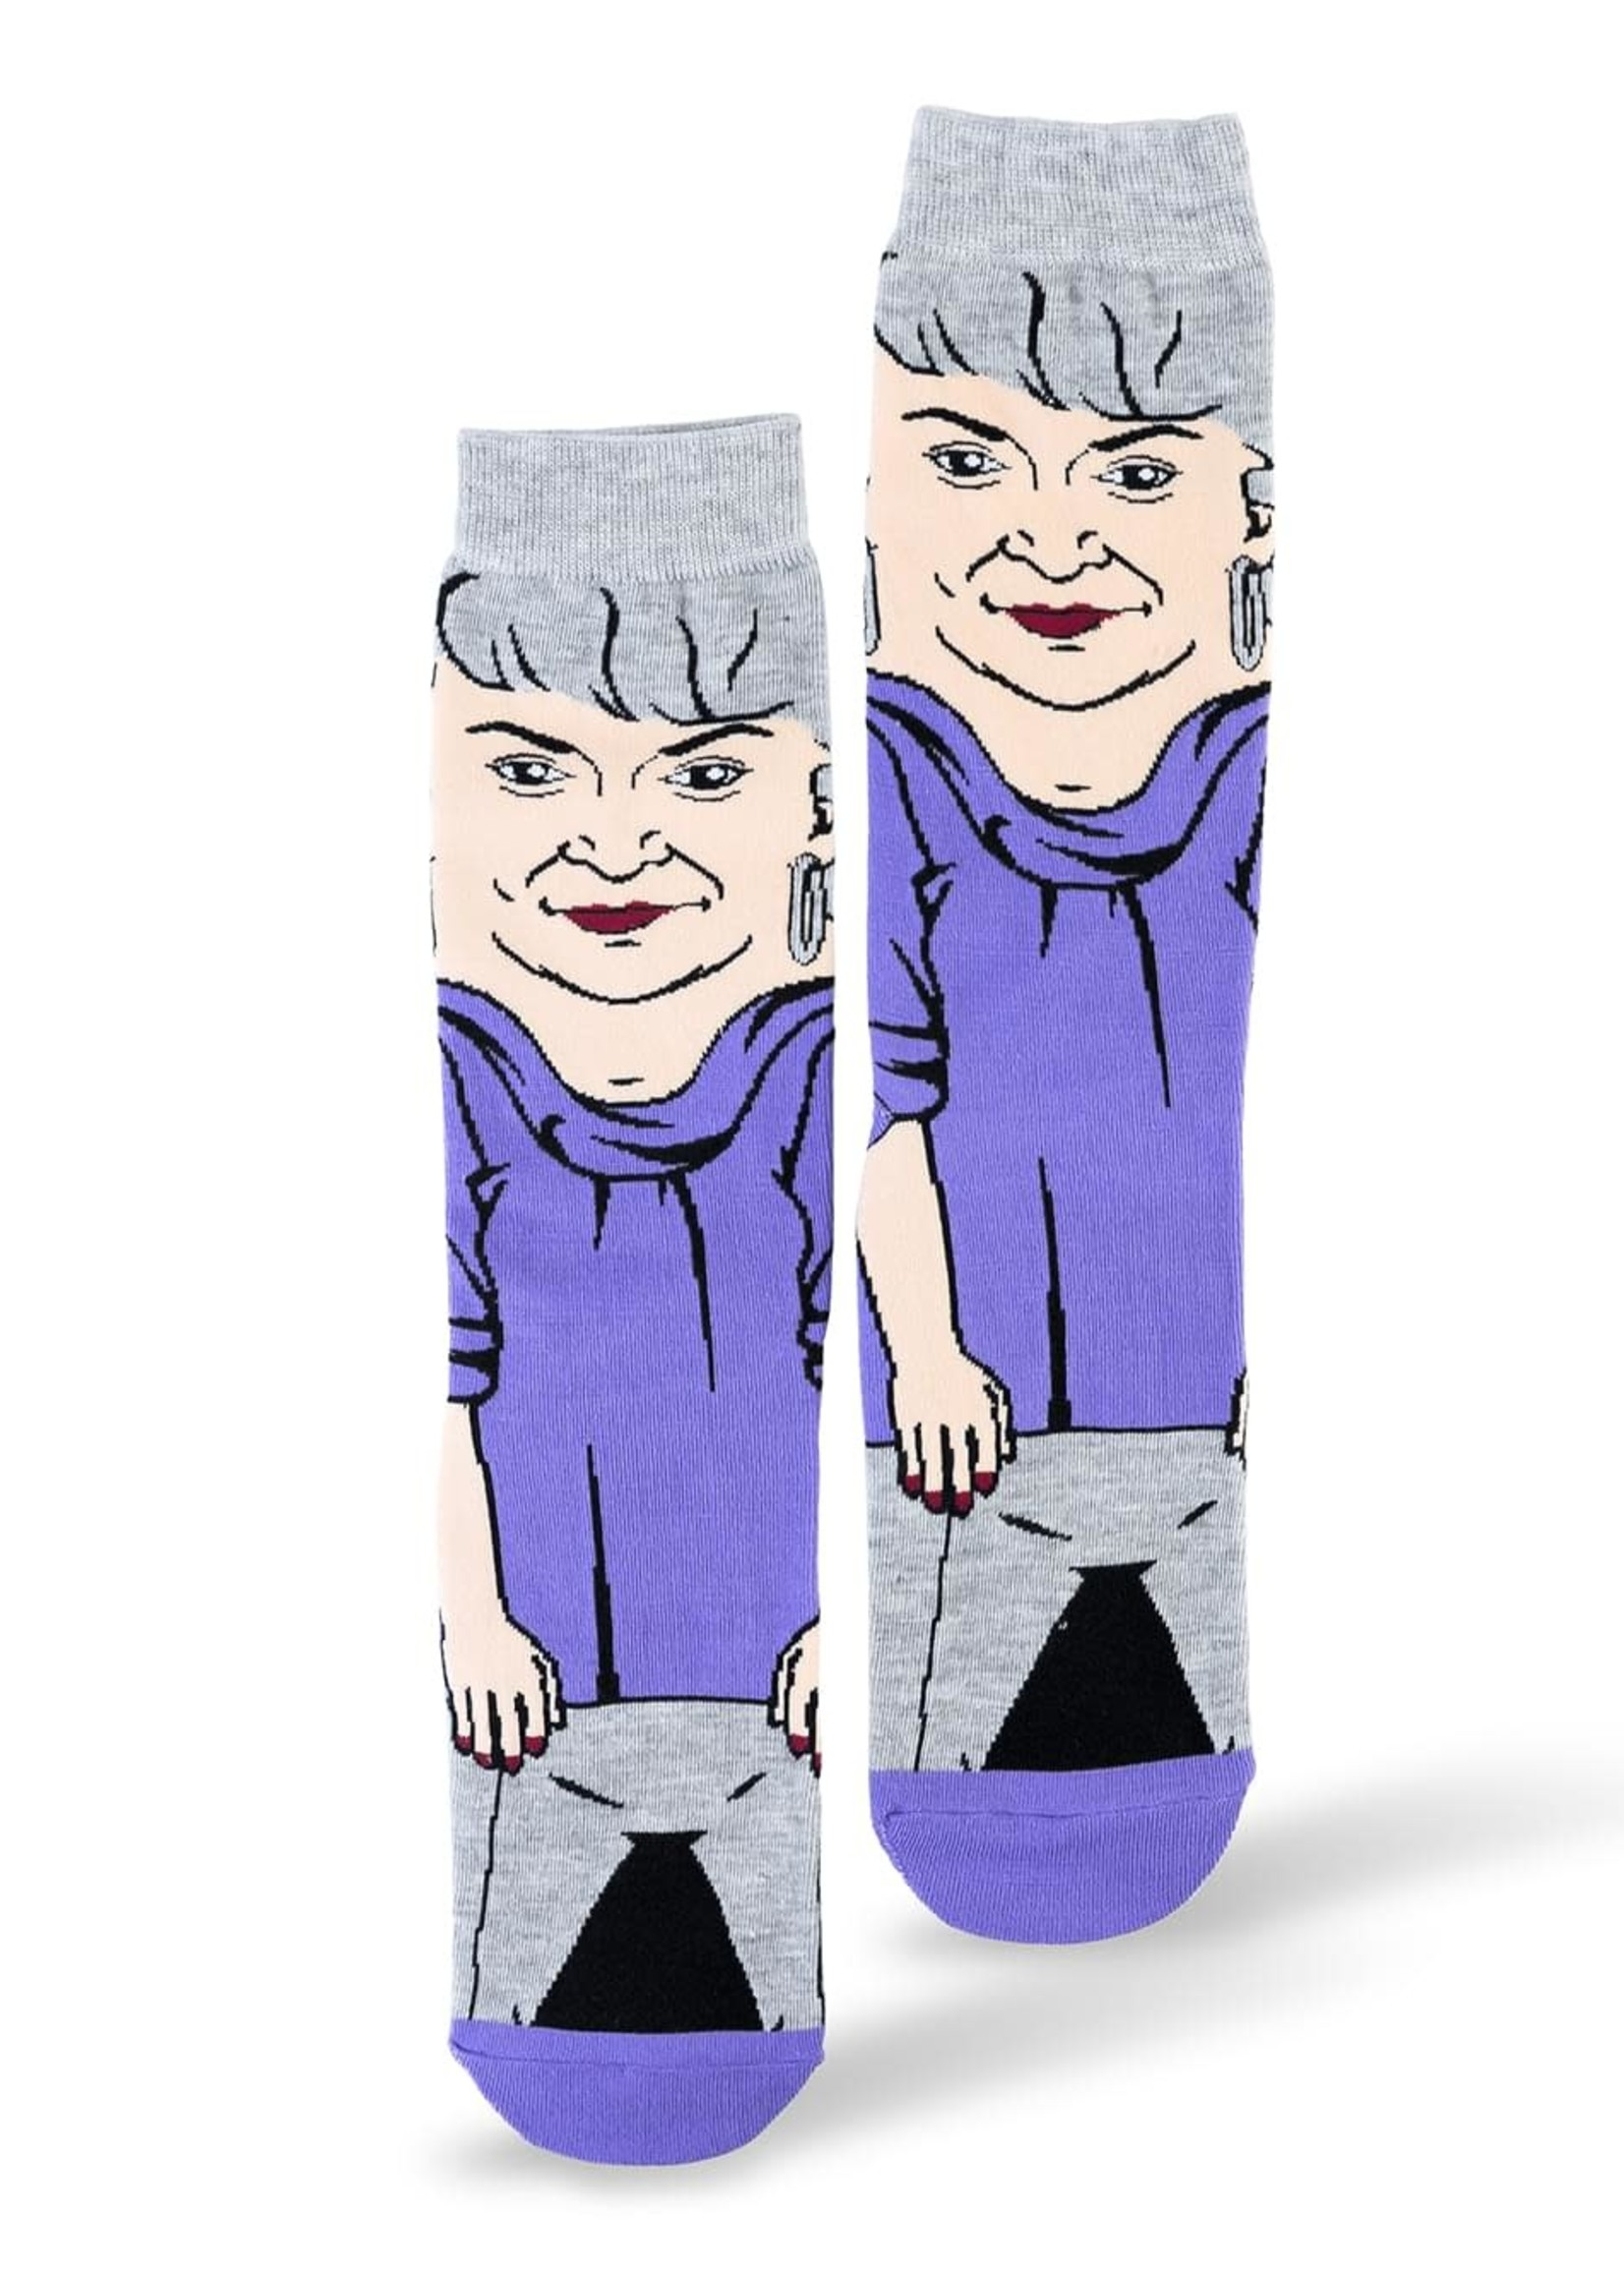 VANDOR GOLDEN GIRLS SOCKS - DOROTHY